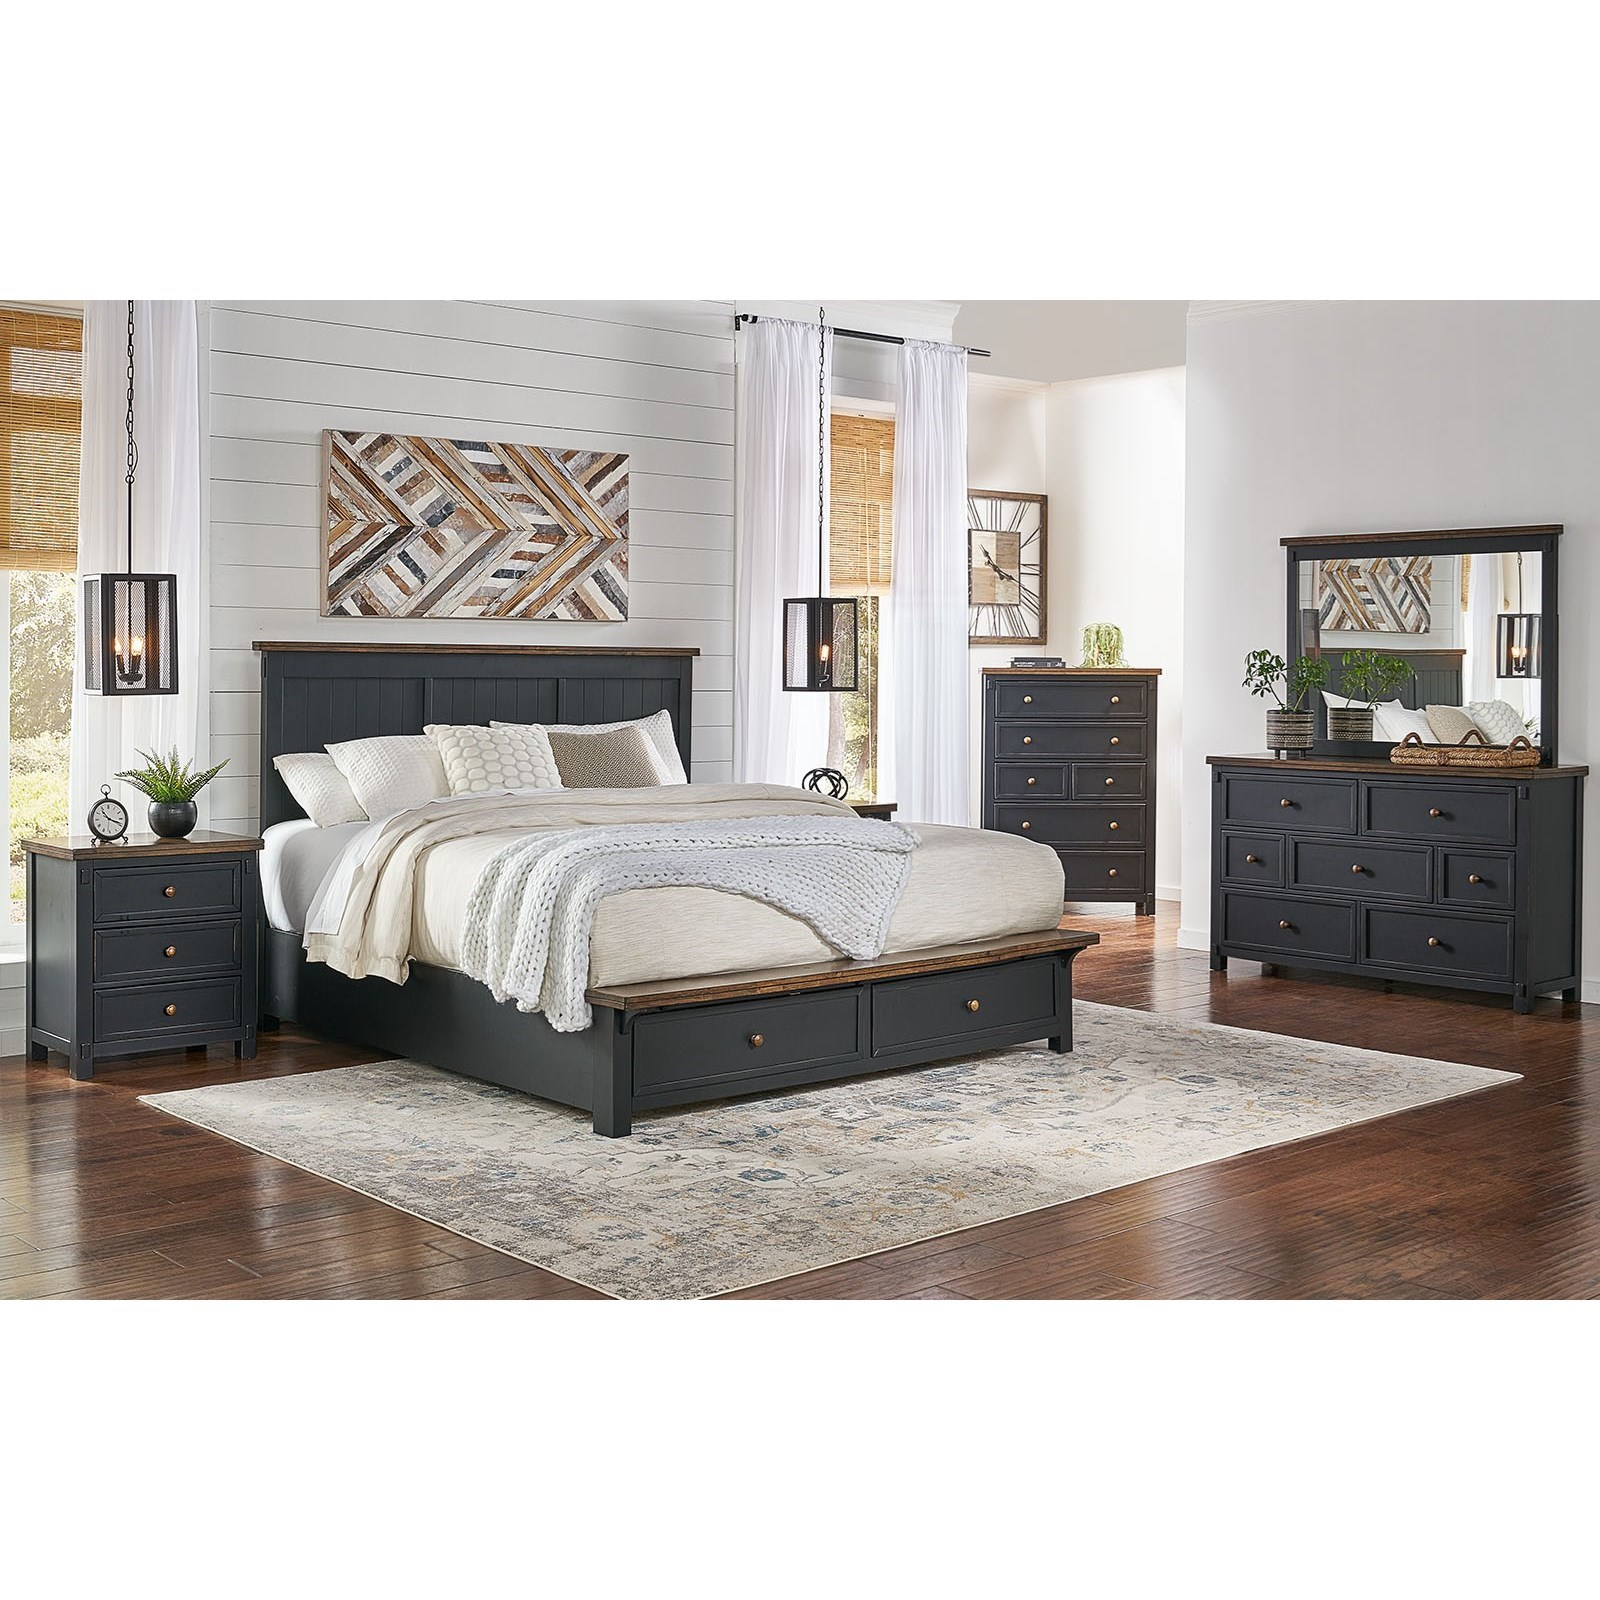 Spencer 5 Piece King Bedroom Group by A-A at Walker's Furniture